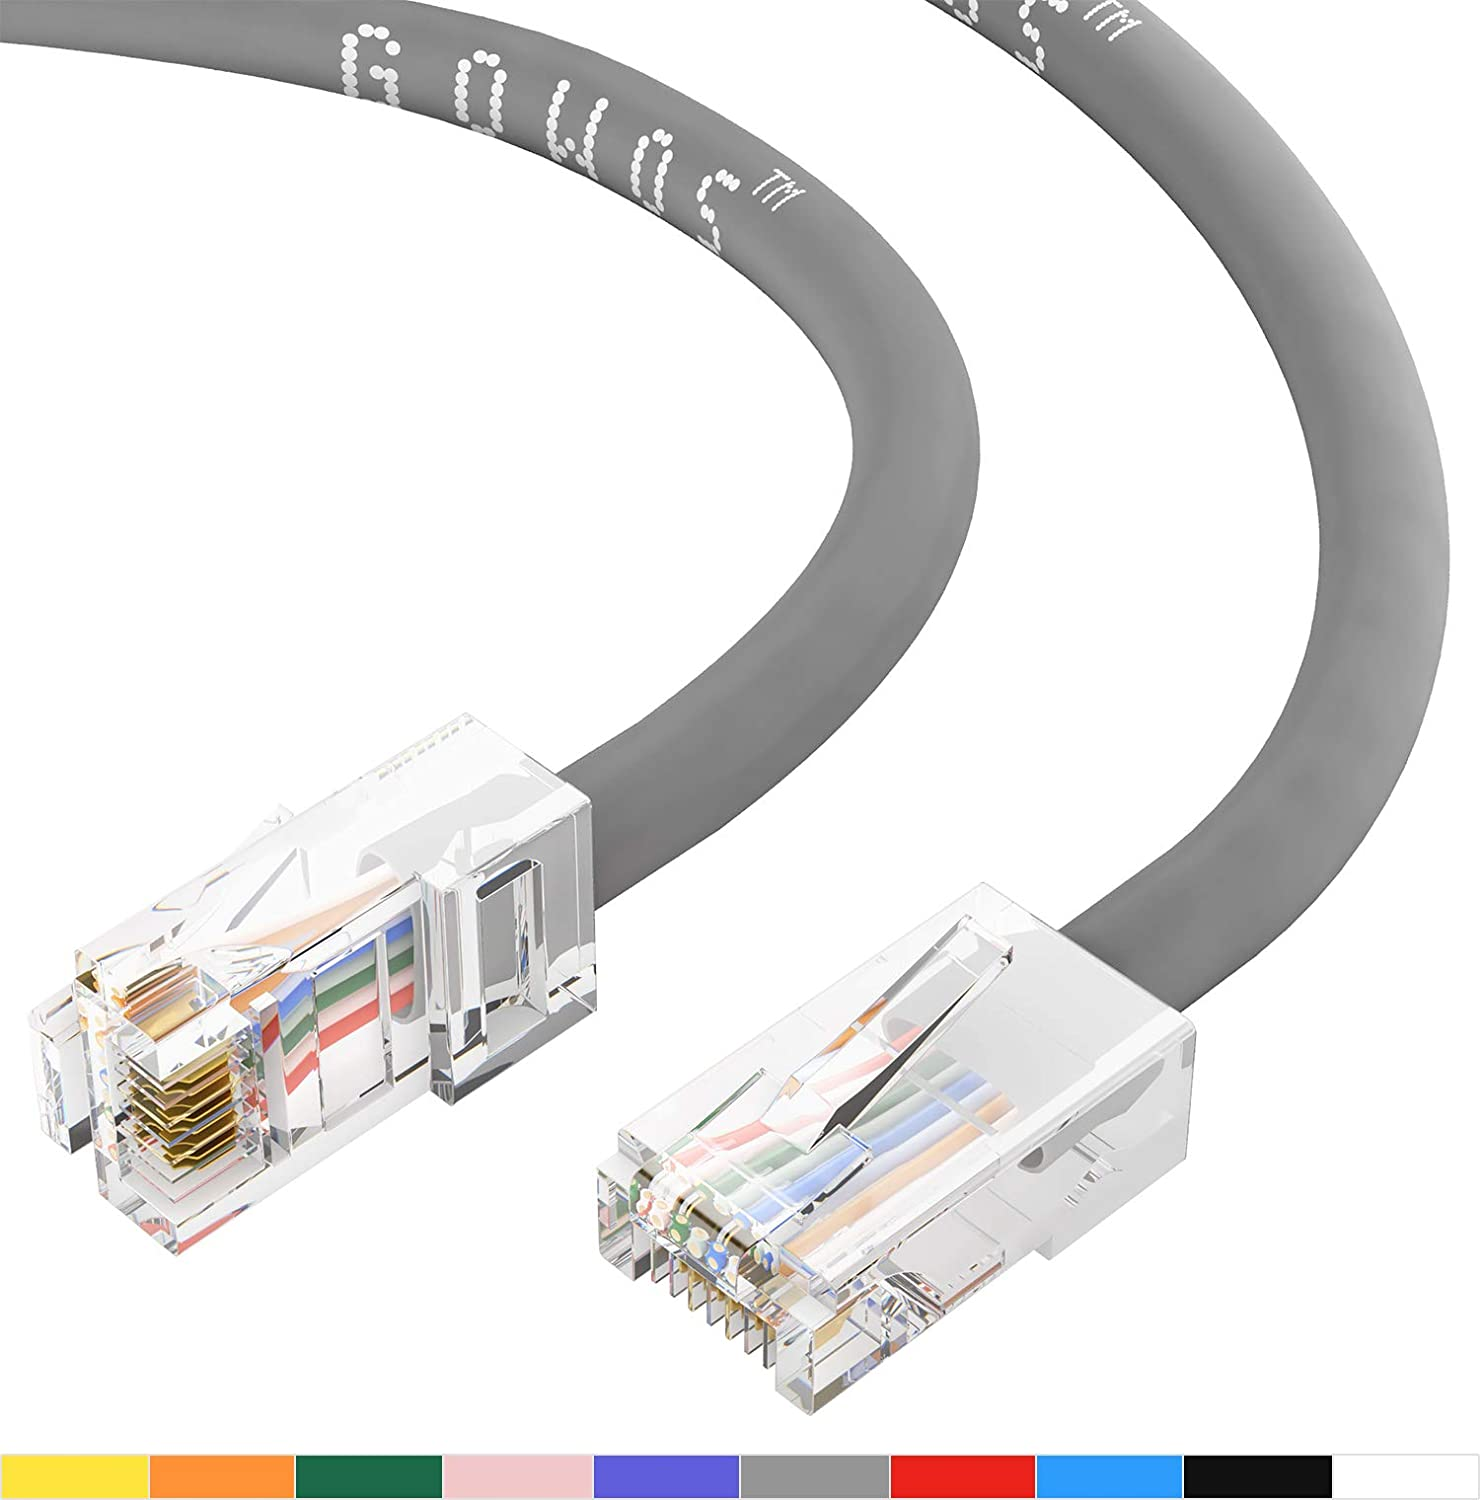 RJ45 10Gbps High Speed LAN Internet Patch Cord Available in 28 Lengths and 10 Colors UTP 14 Feet - Gray Cat5e Ethernet Cable GOWOS 10-Pack Computer Network Cable with Bootless Connector